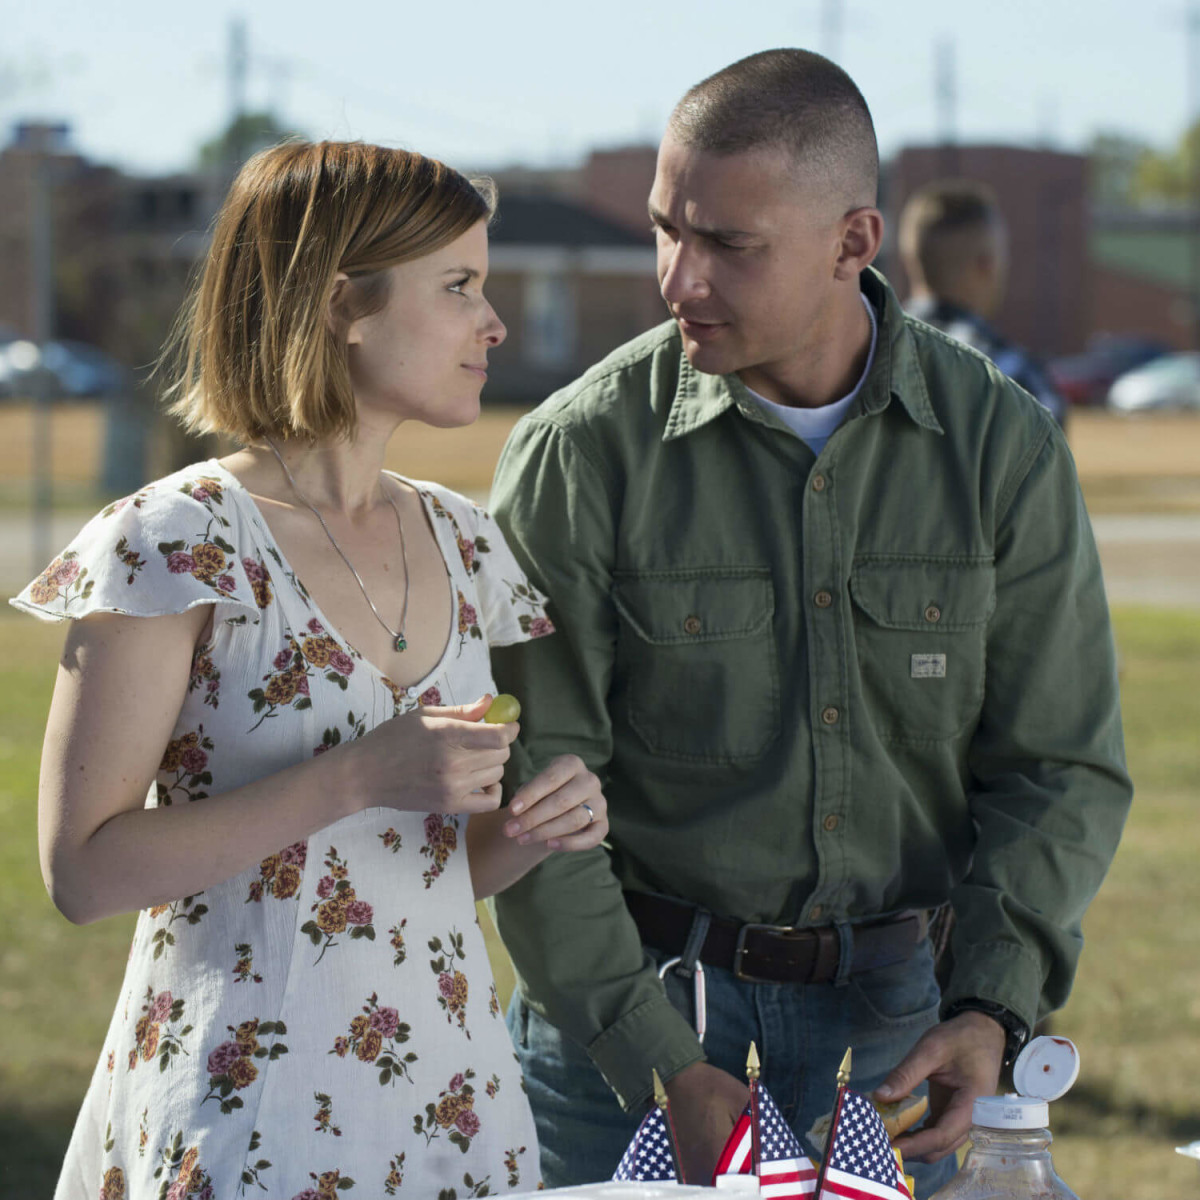 Kate Mara and Shia LaBeouf in Man Down